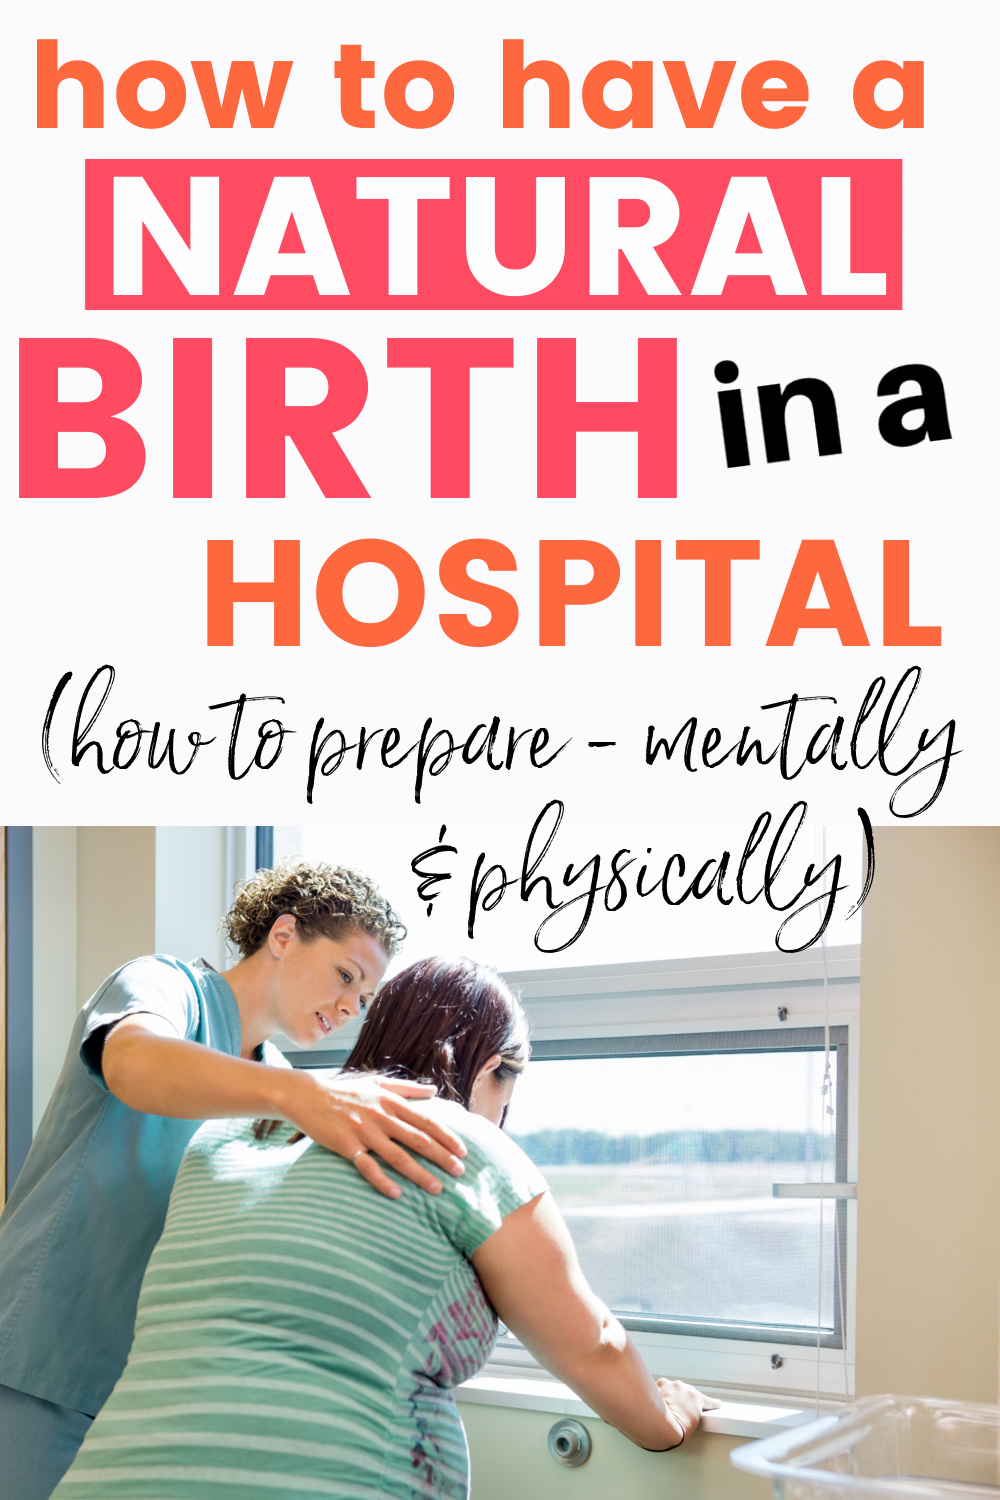 """graphic of woman laboring with text overlay """"how to have a natural birth in a hospital - how to prepare mentally and physically"""""""